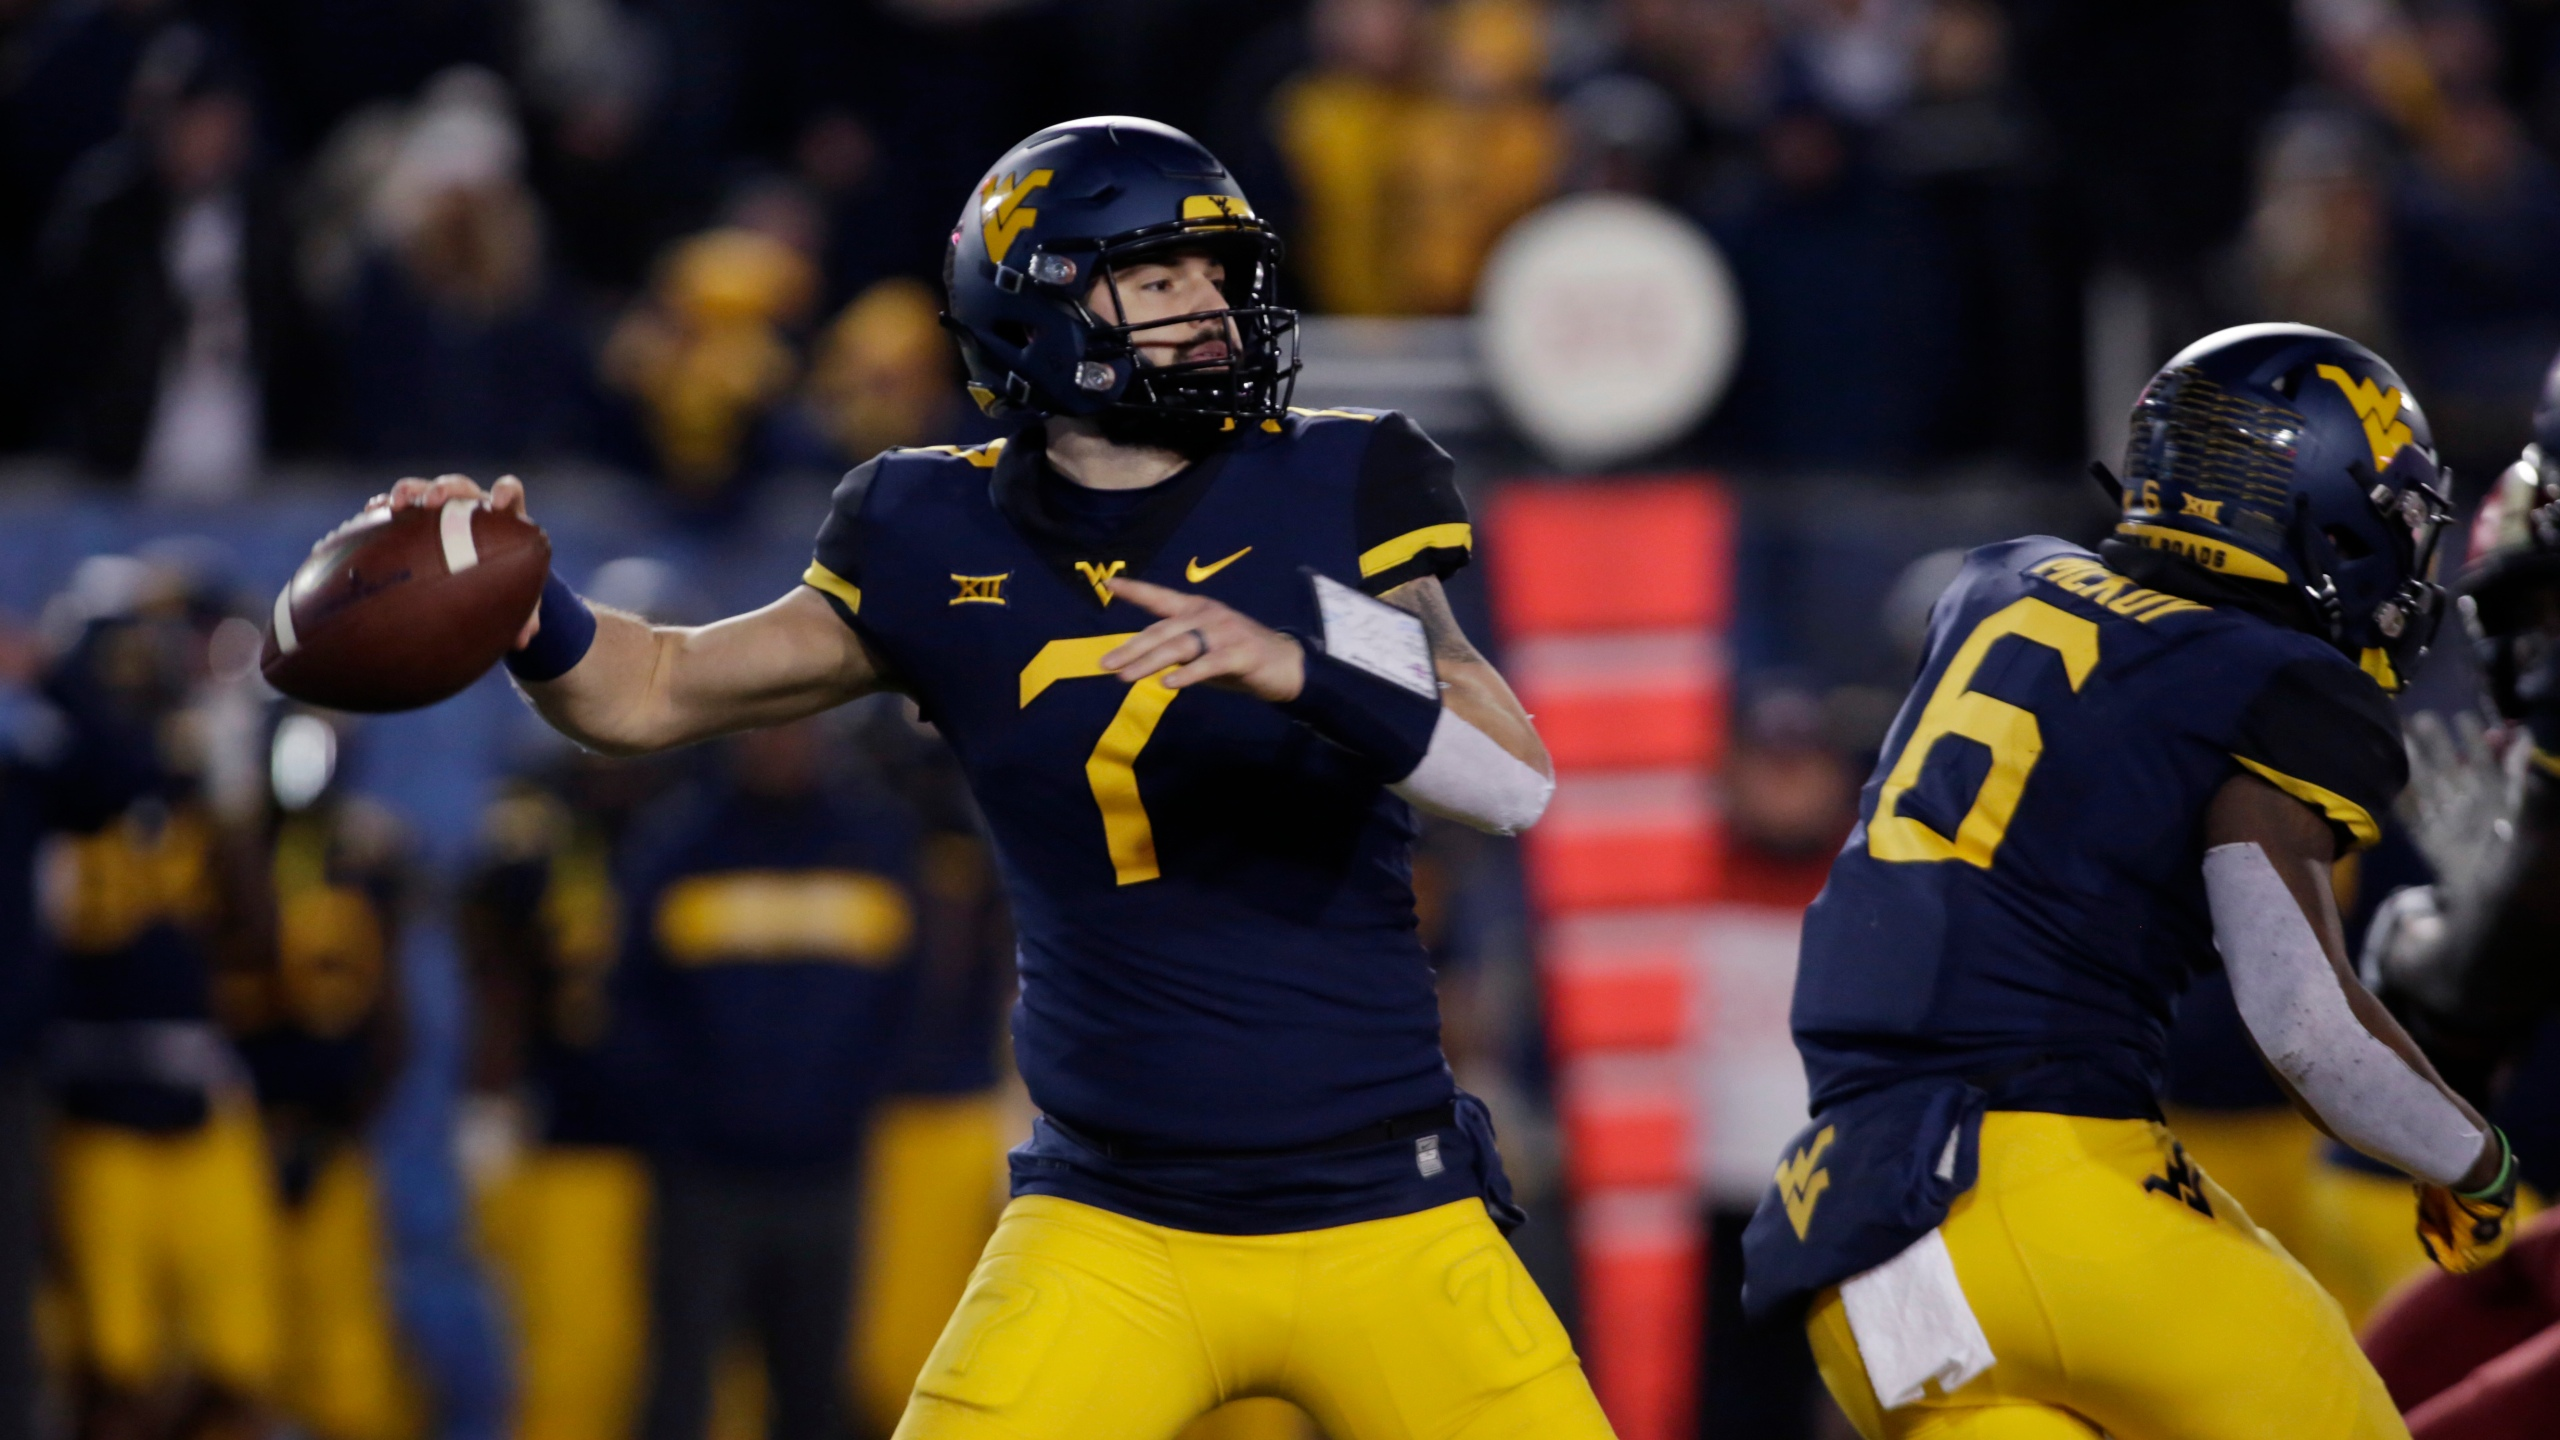 WVU quarterback Will Grier will not play in bowl game ...